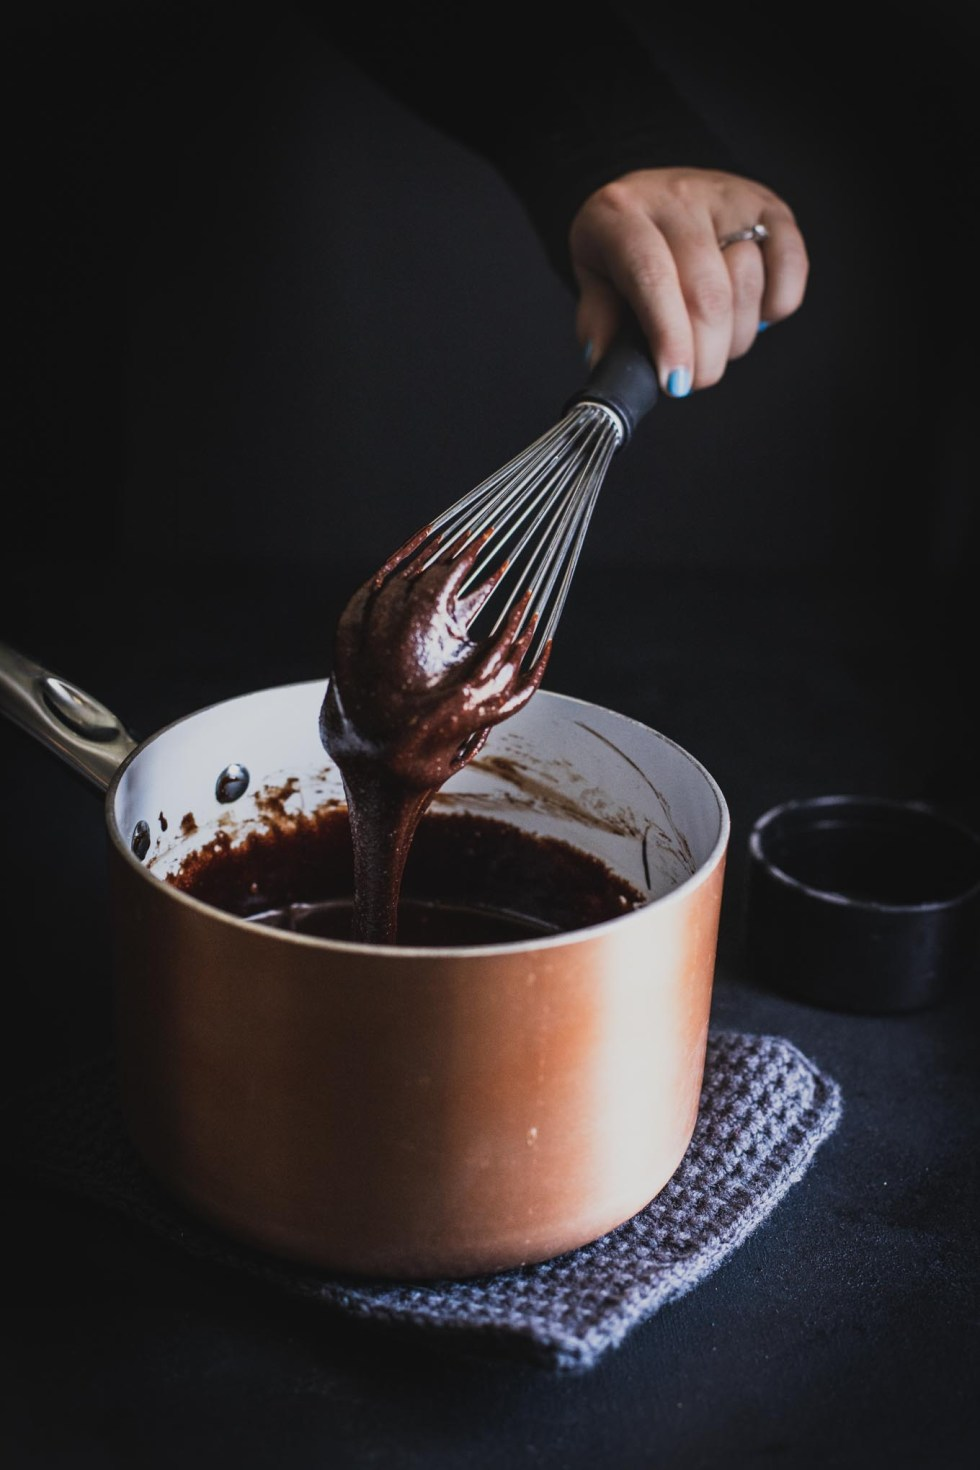 Whisking brownie batter in a copper saucepan